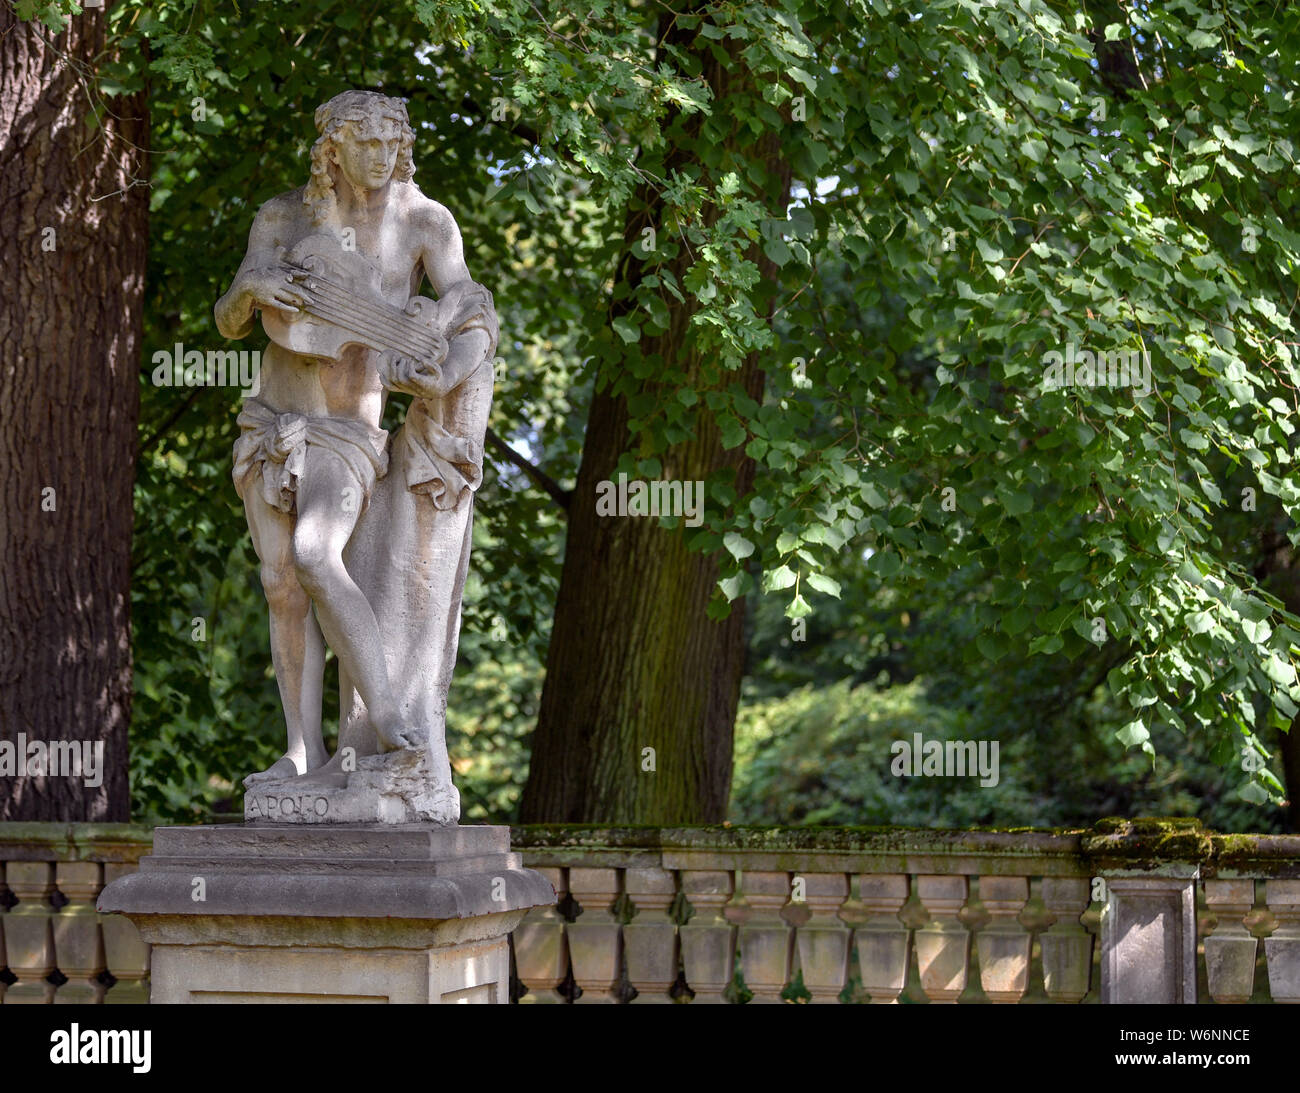 01 August 2019, Brandenburg, Wiepersdorf: A sandstone figure in the park of Wiepersdorf Castle. Since 01.08.2019 the castle has been under the sponsorship of the state of Brandenburg. The German Foundation for Monument Conservation has handed over the land and the buildings including the inventory of Wiepersdorf Castle to the newly founded Cultural Foundation. The state provides around 720,000 euros annually for the operation. According to the information provided, the reopening of the house and the arrival of the first scholarship holders in 2020 will be prepared. Photo: Patrick Pleul/dpa-Zen Stock Photo